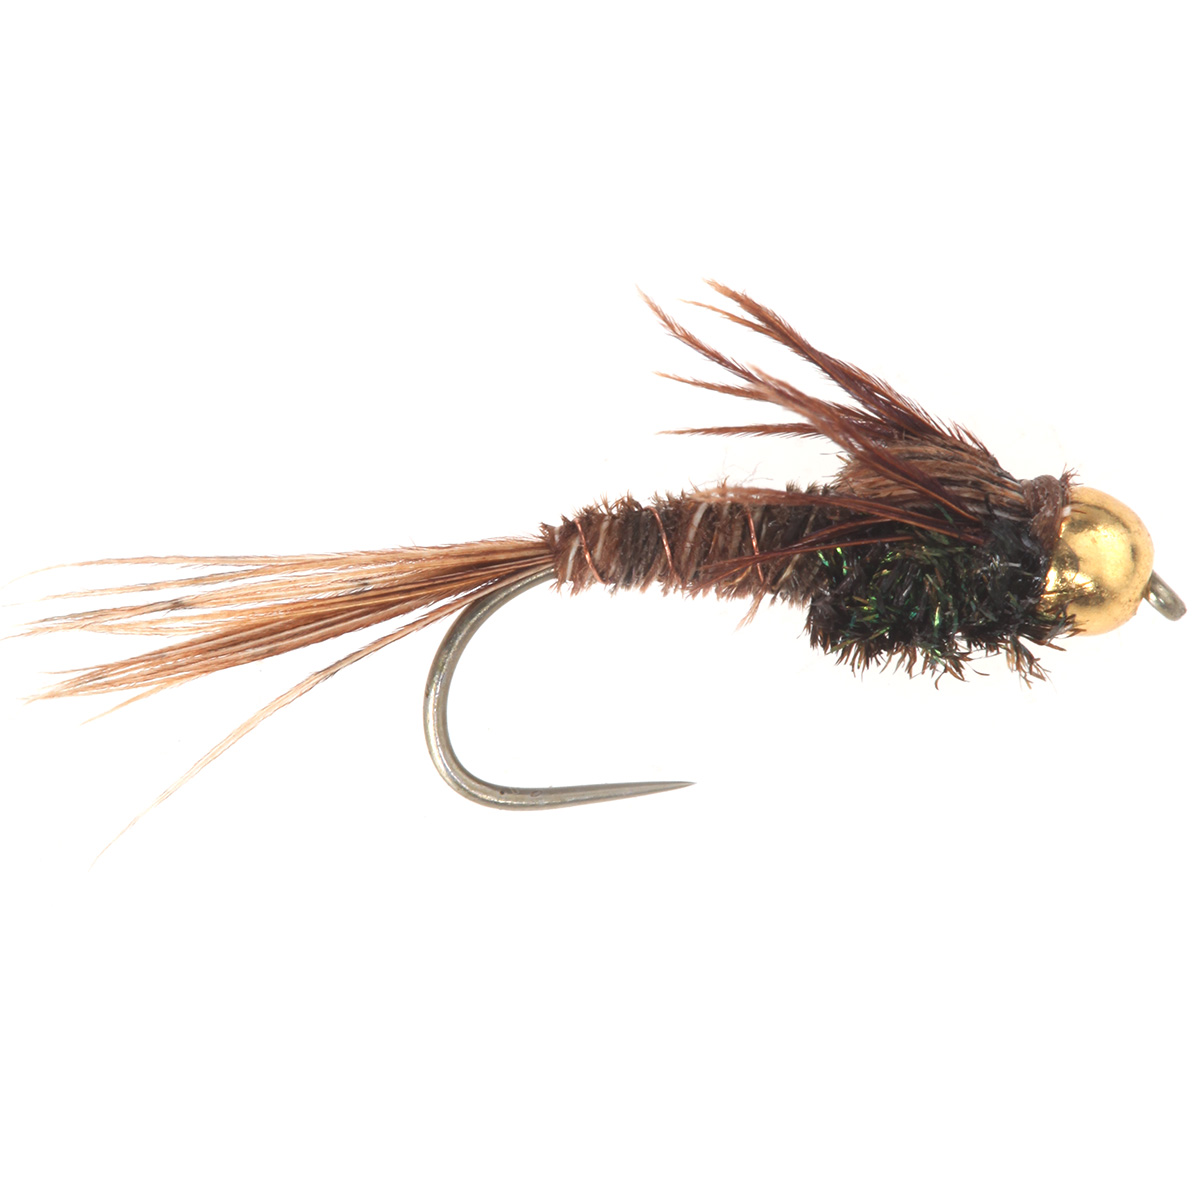 Pheasant tail nymph tungsten bead tungsten beads nymphs for Fly fishing nymphs